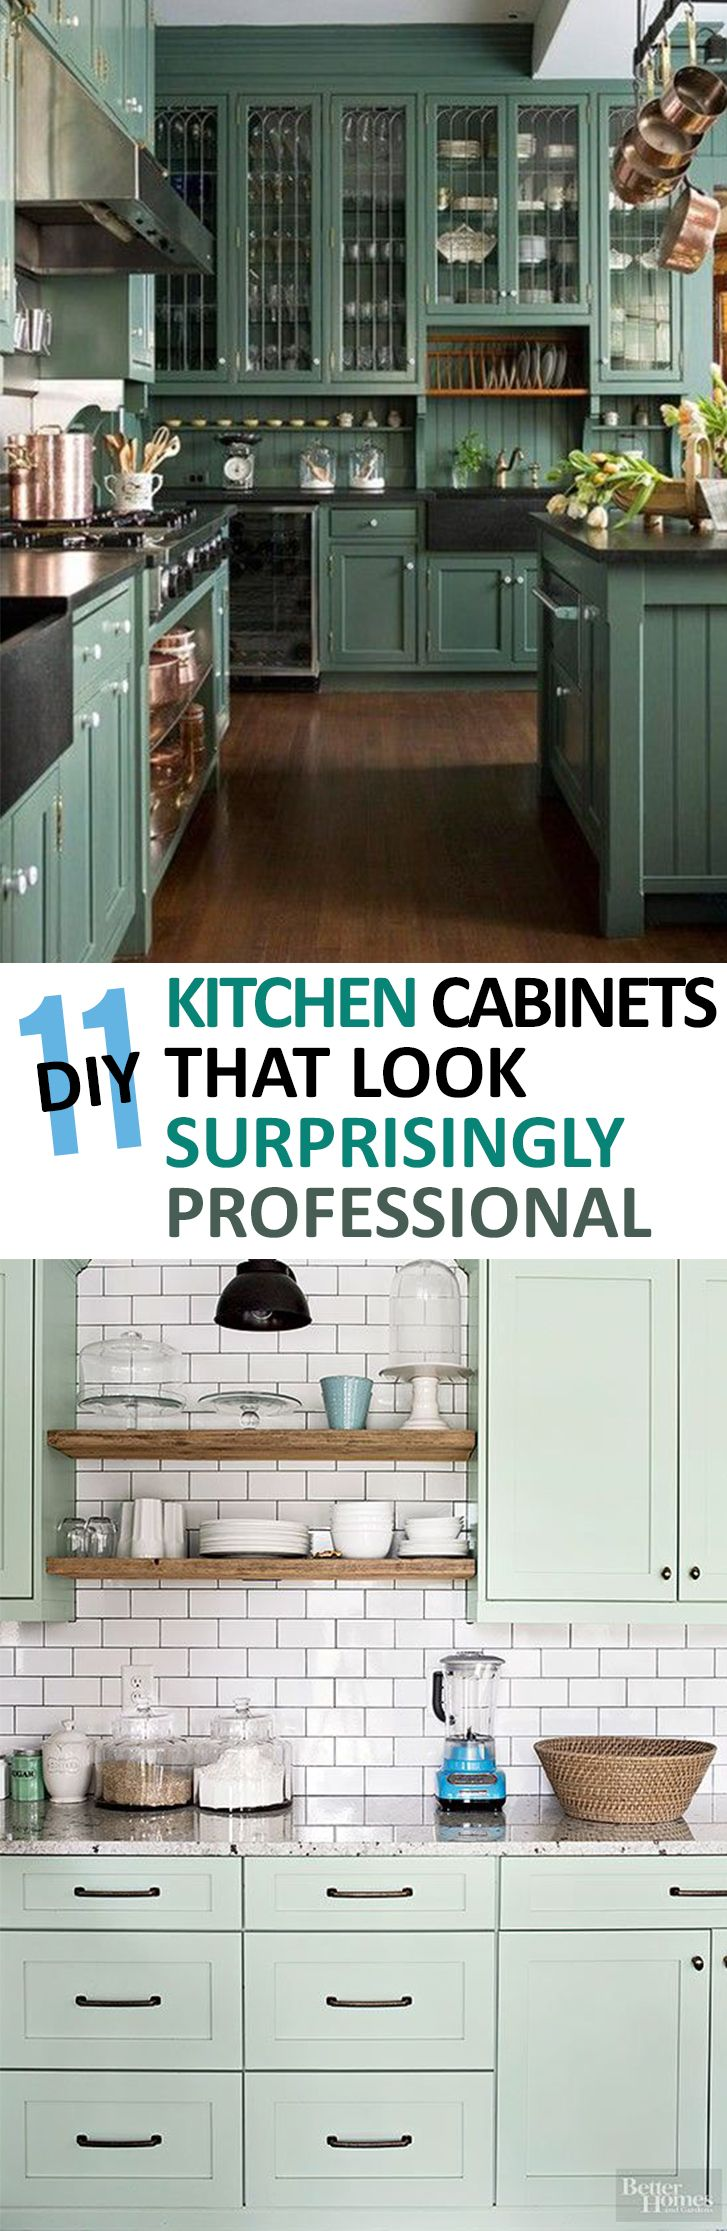 B82944 kitchen cabinets diy kitchens - 11 Diy Kitchen Cabinets That Look Surprisingly Professional